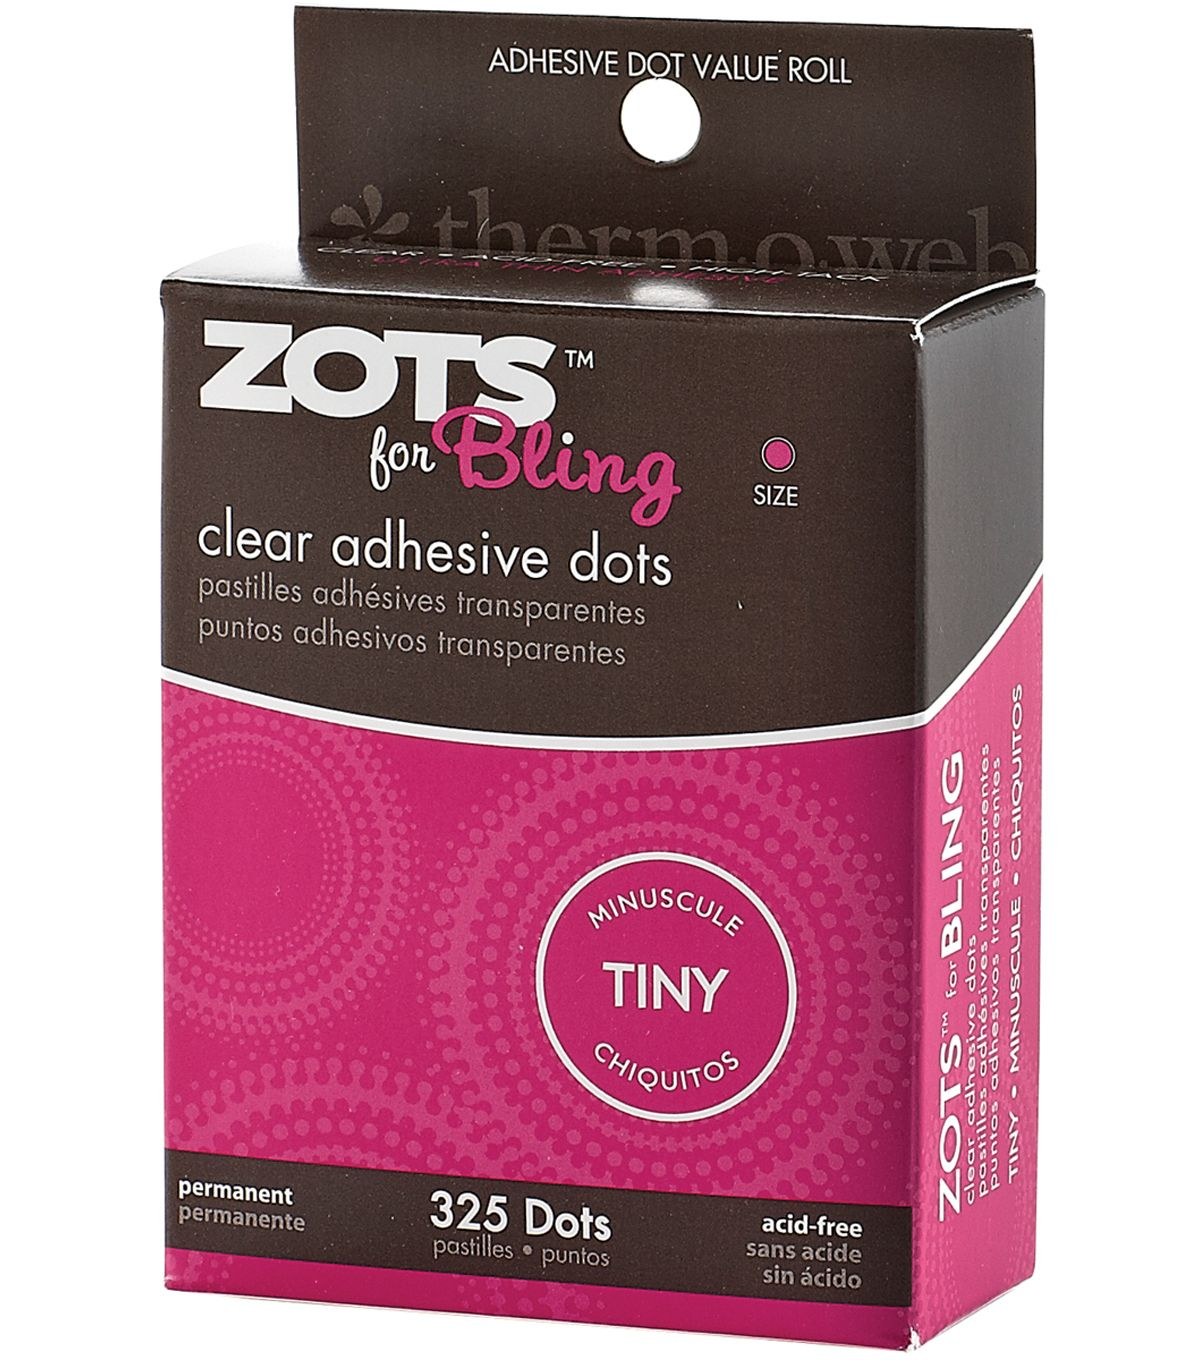 Zots For Tiny Bling Clear Adhesive Dots | Adhesive, Bling and ...